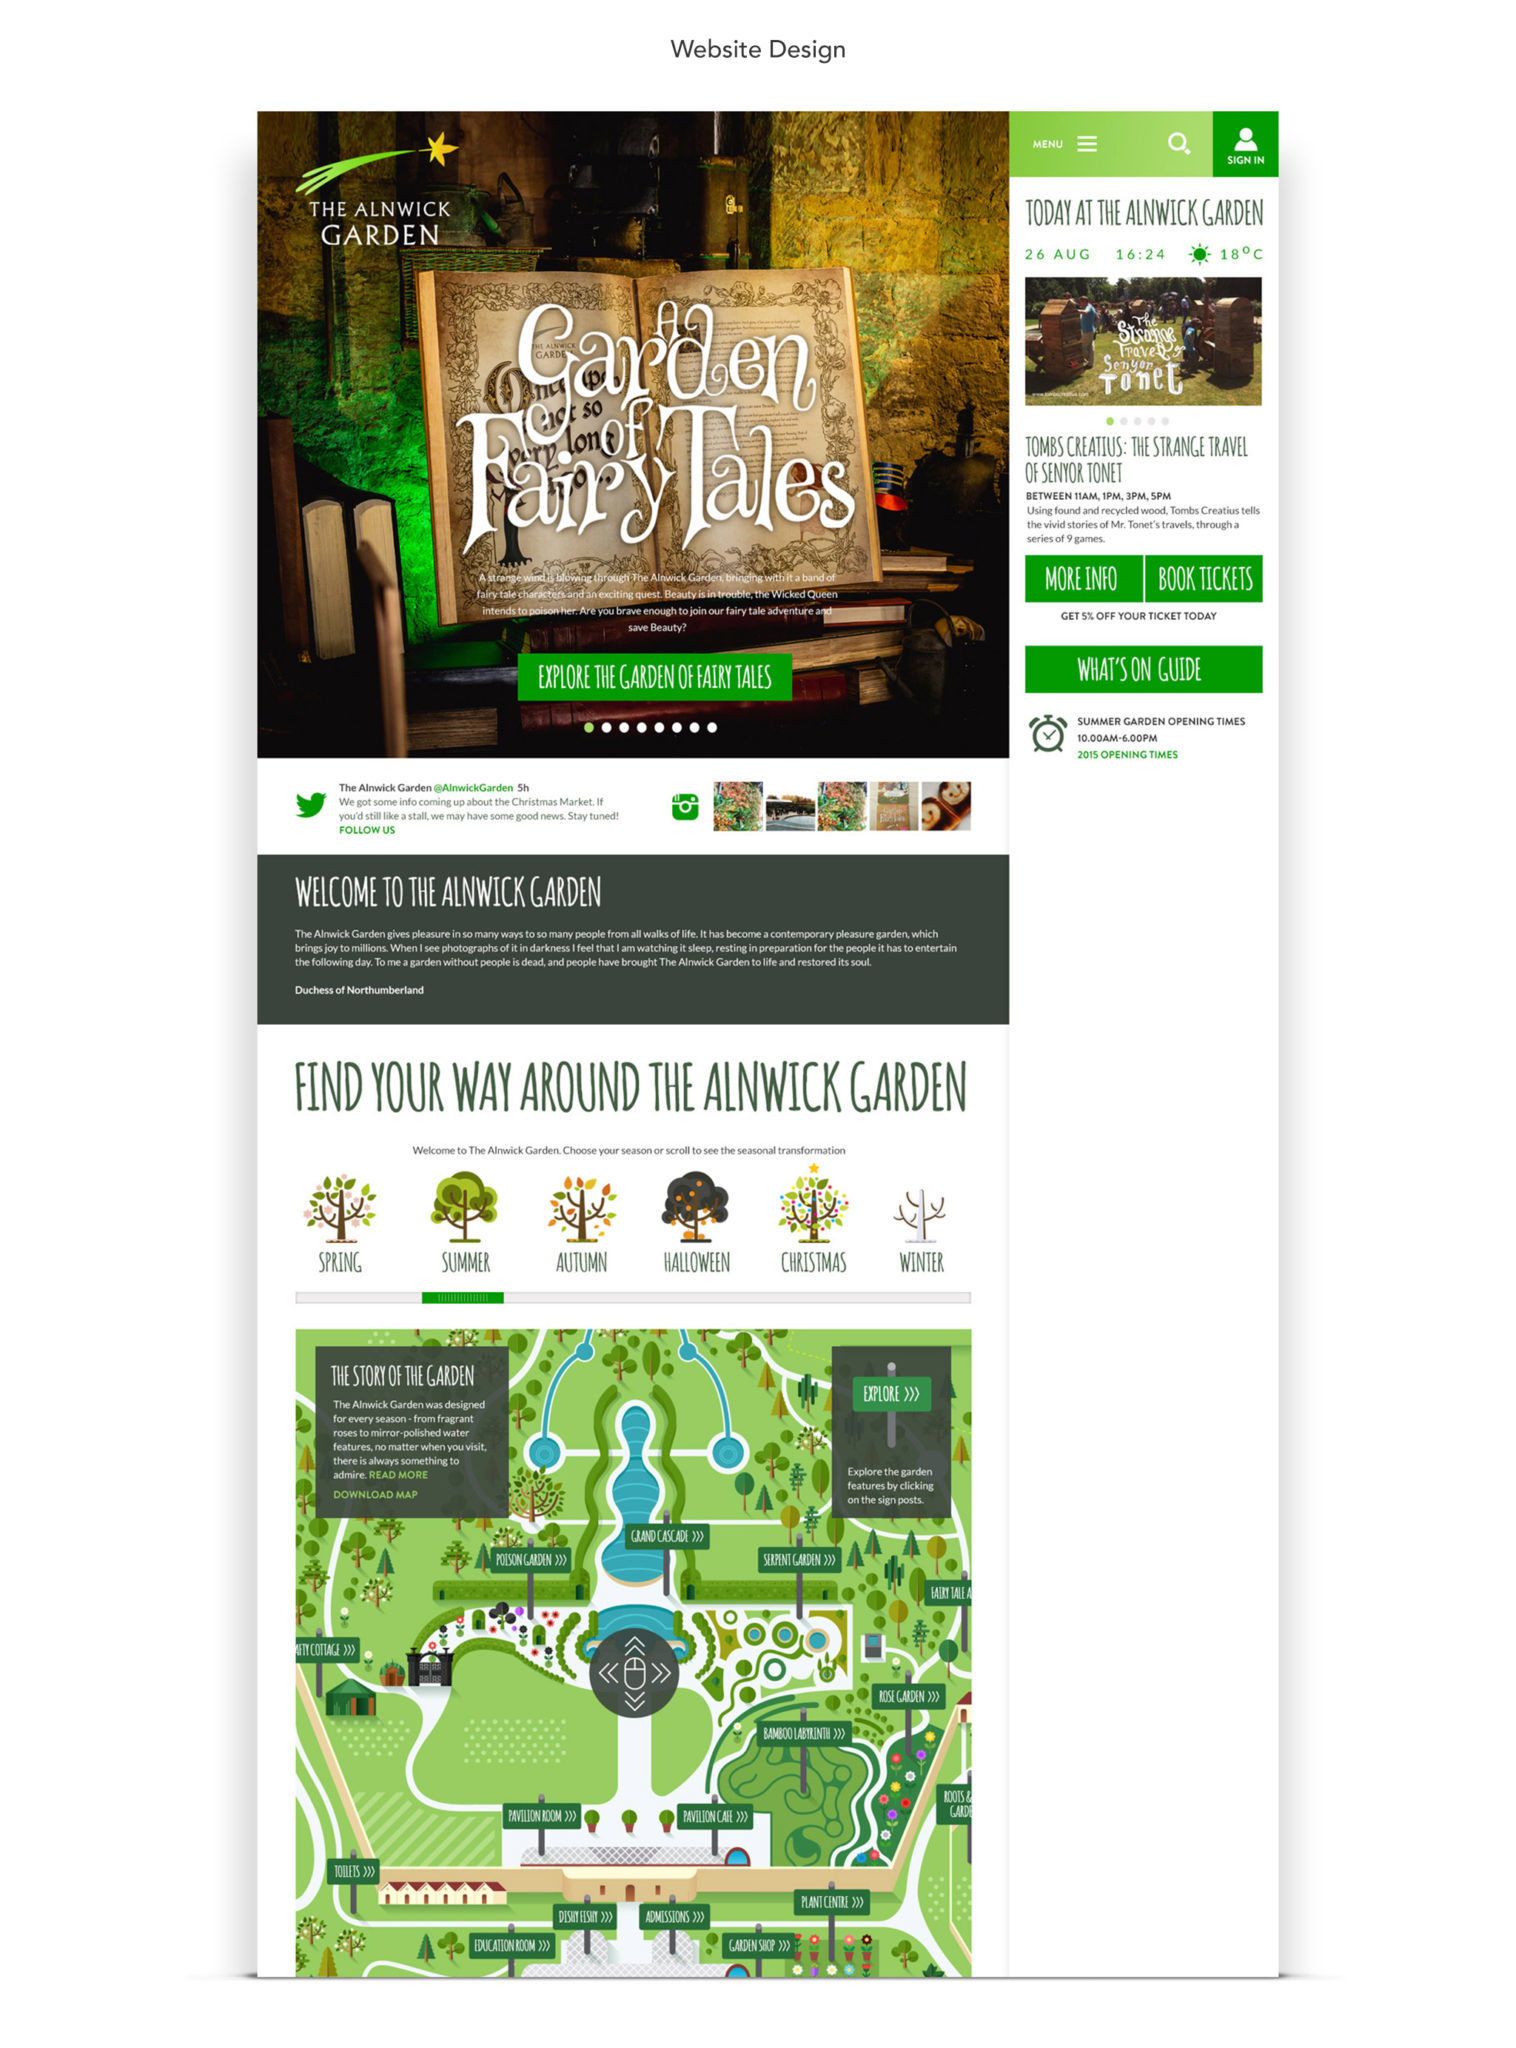 The Alnwick Garden Website